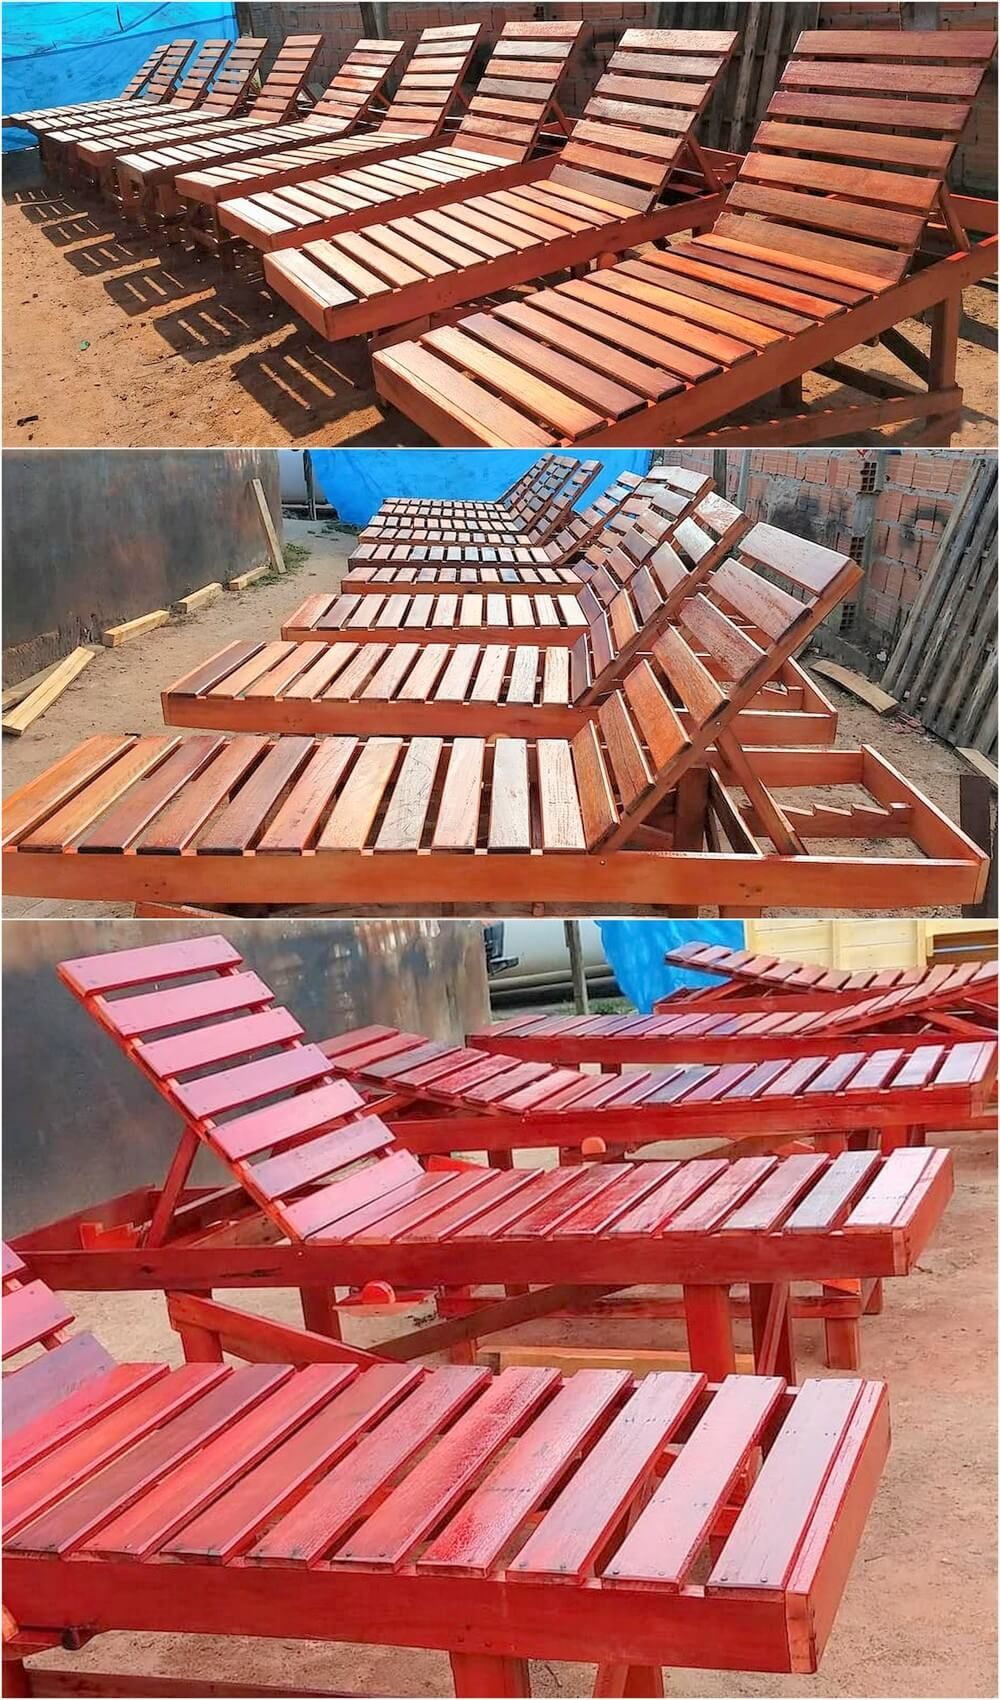 Creative And Usable DIY Wood Pallet Ideas | Recycled ...